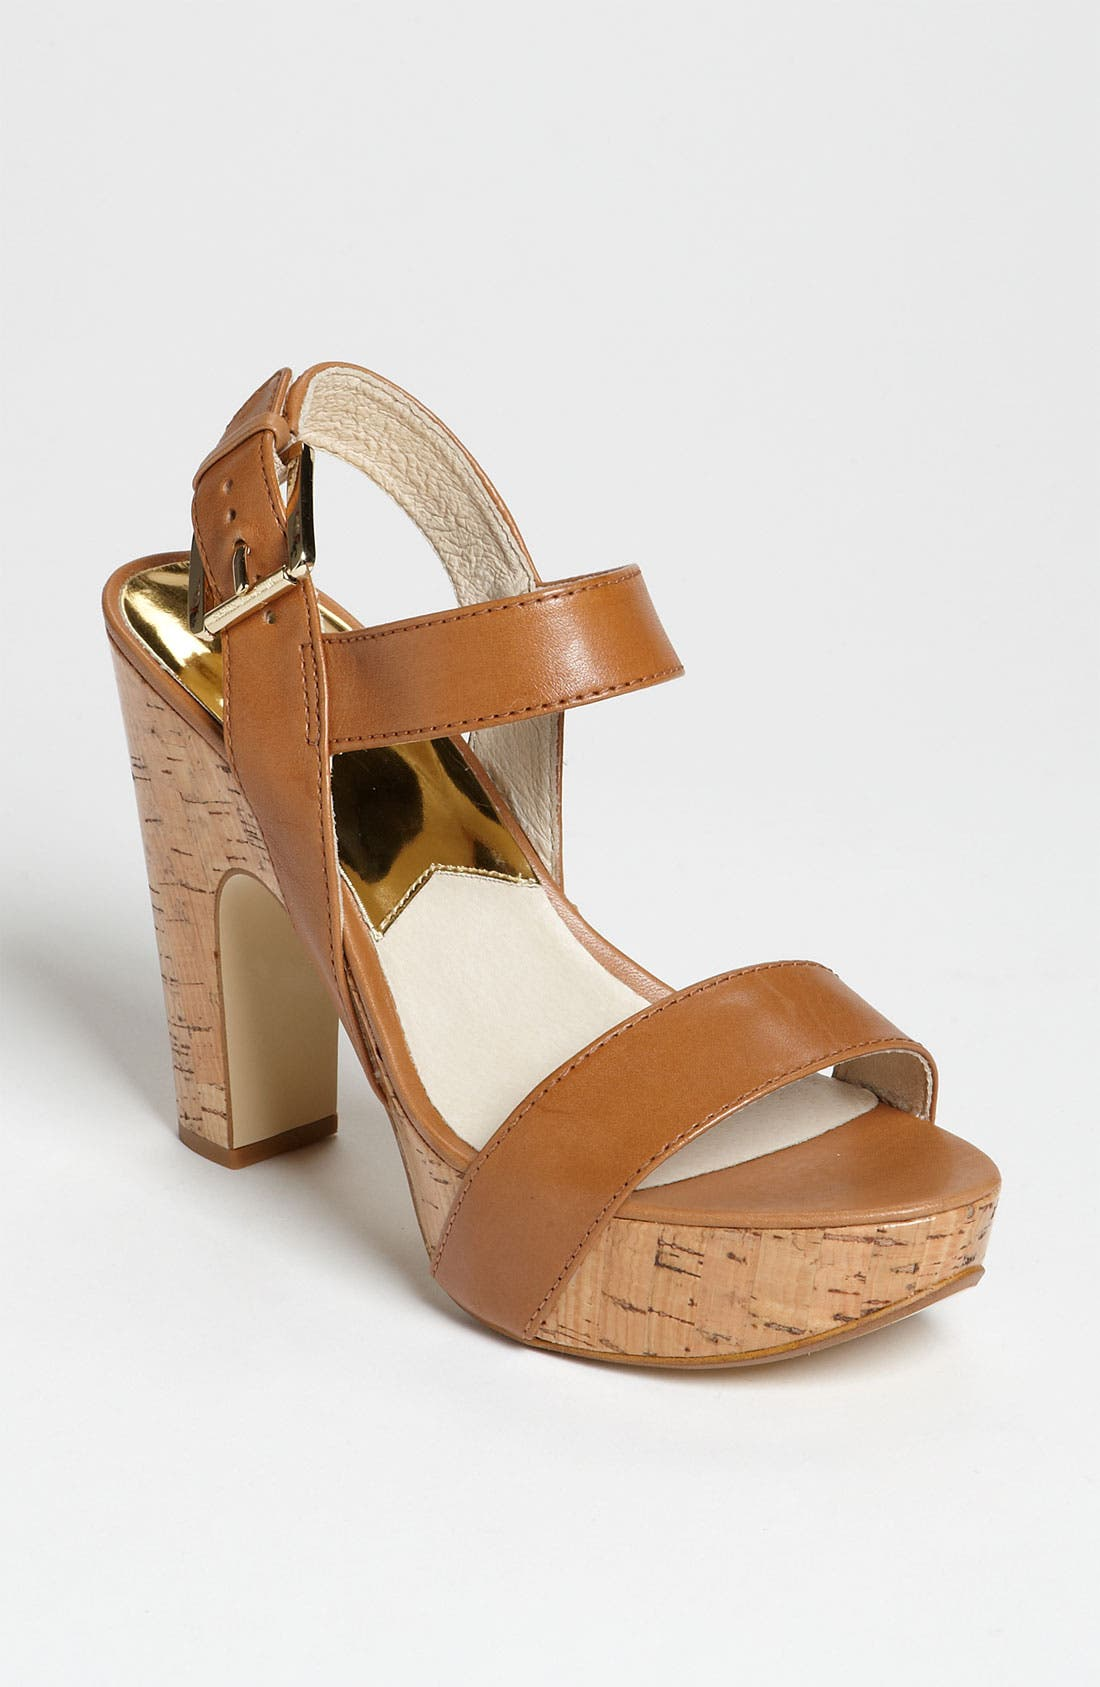 Alternate Image 1 Selected - MICHAEL Michael Kors 'Ivana' Sandal